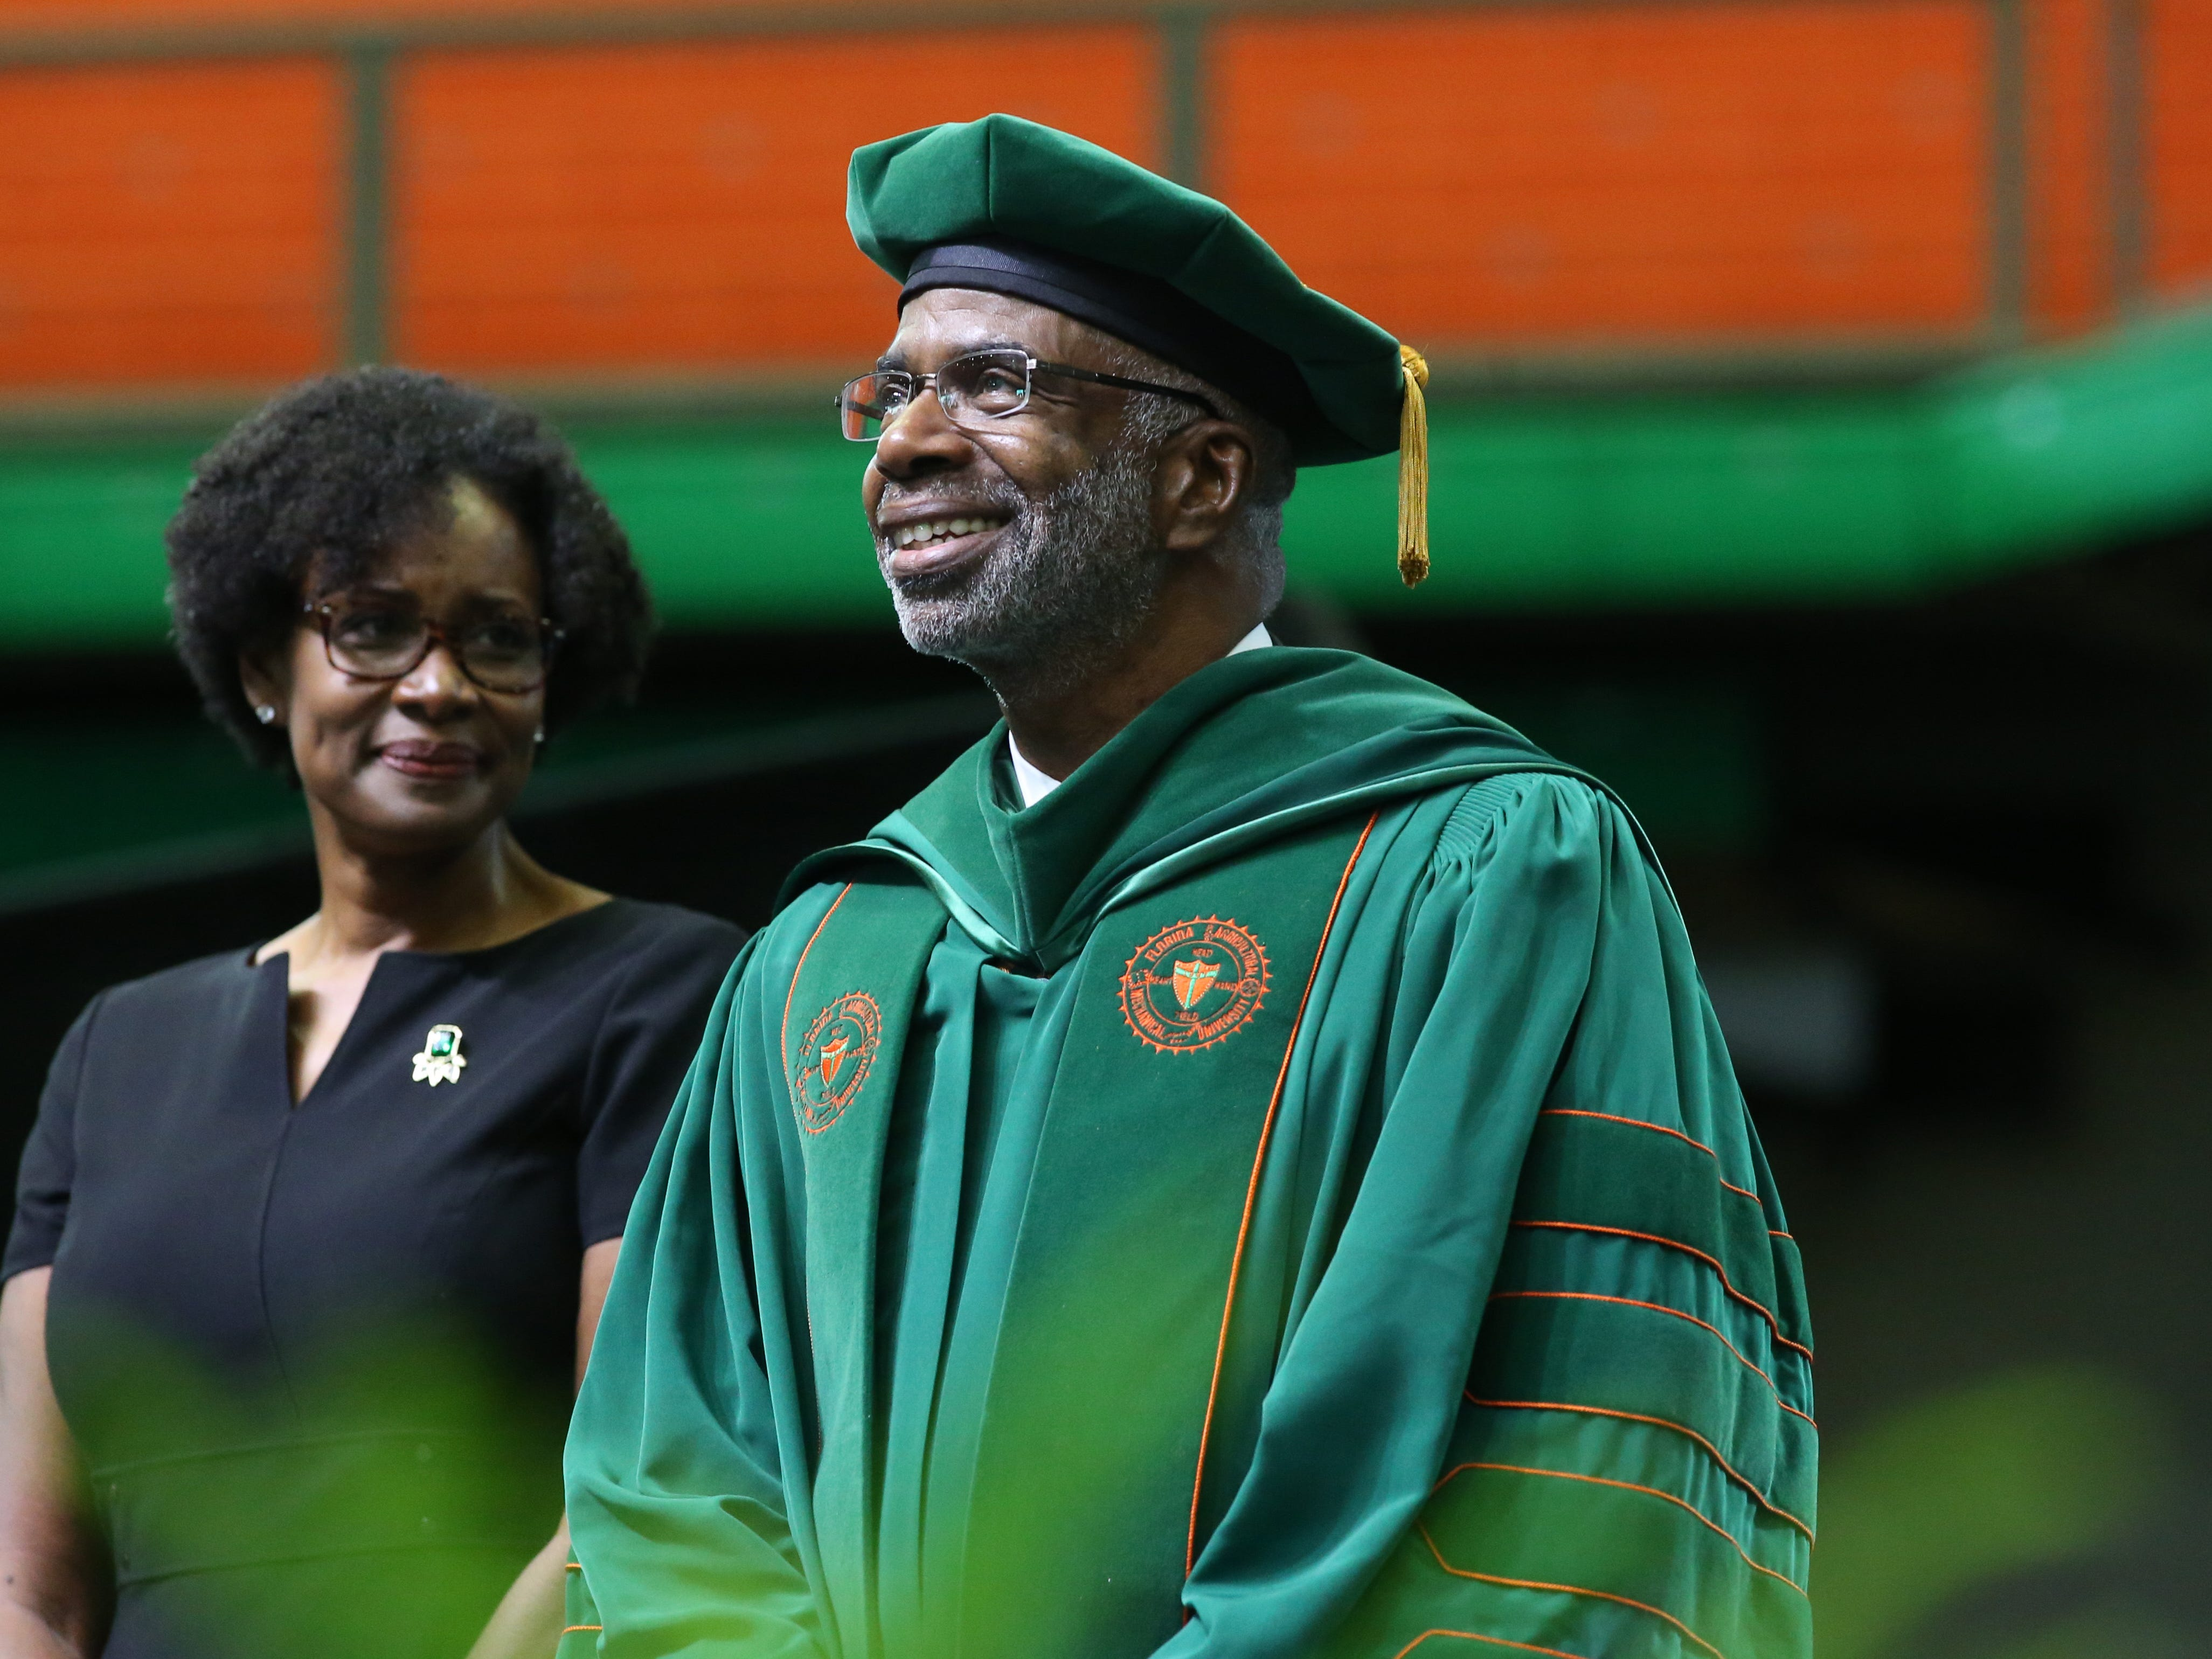 The Academic Robing of Larry Robinson, performed by his wife, Sharon Robinson at the 2018 Presidents' Inauguration held in the Lawson Center on Friday, Nov. 9, 2018.